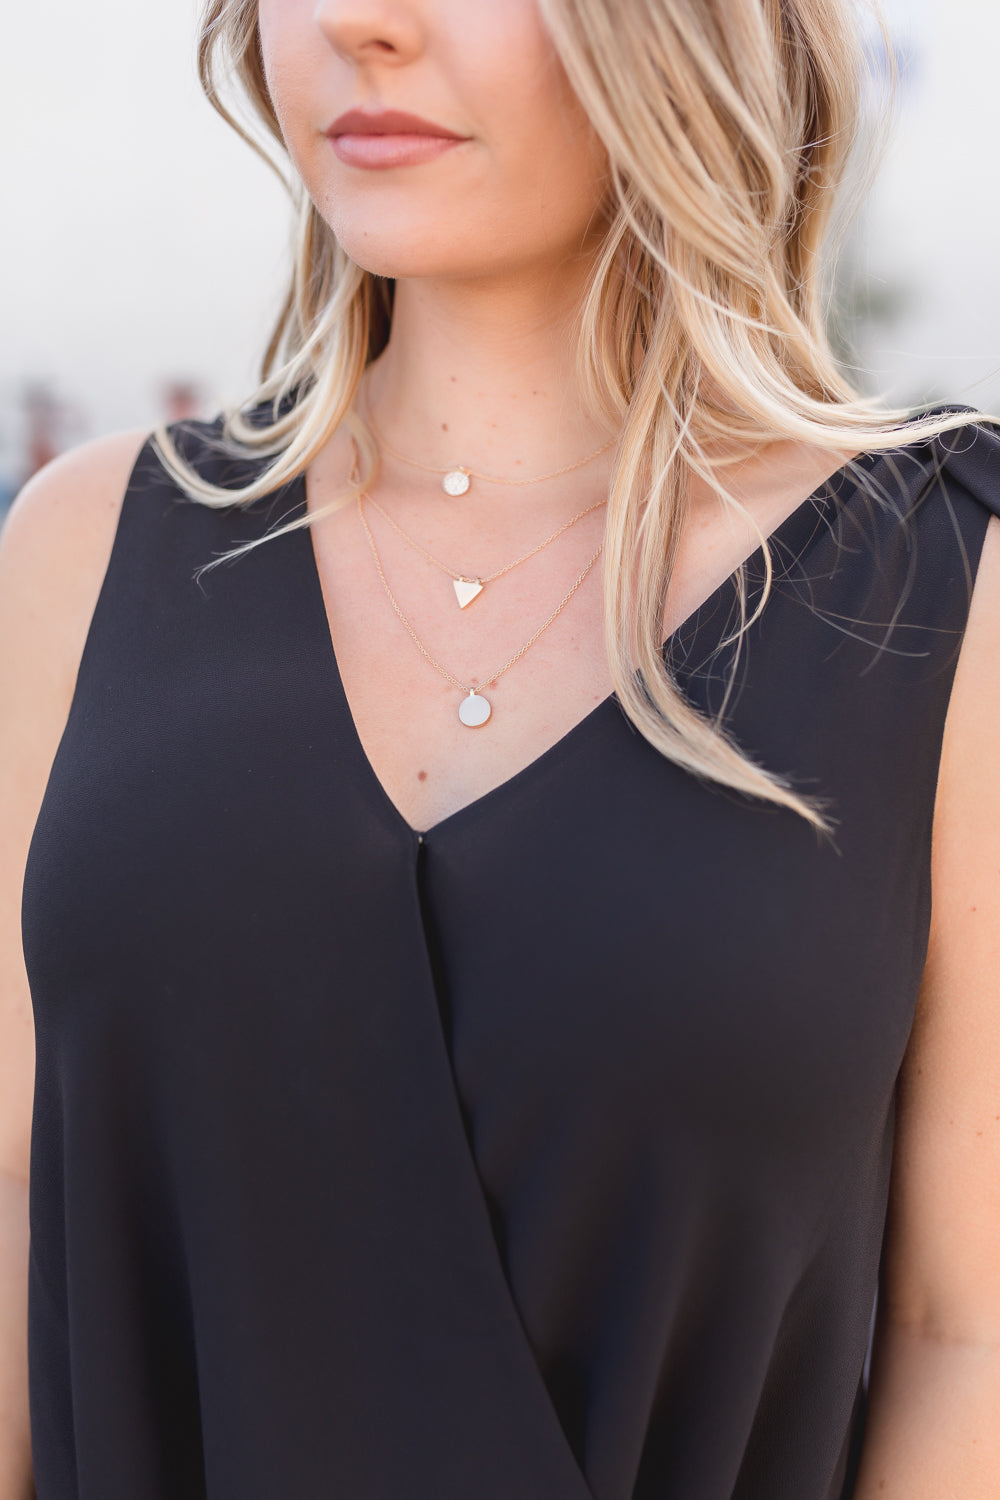 NATALY RHINESTONE GEO SHAPE LAYERED NECKLACE